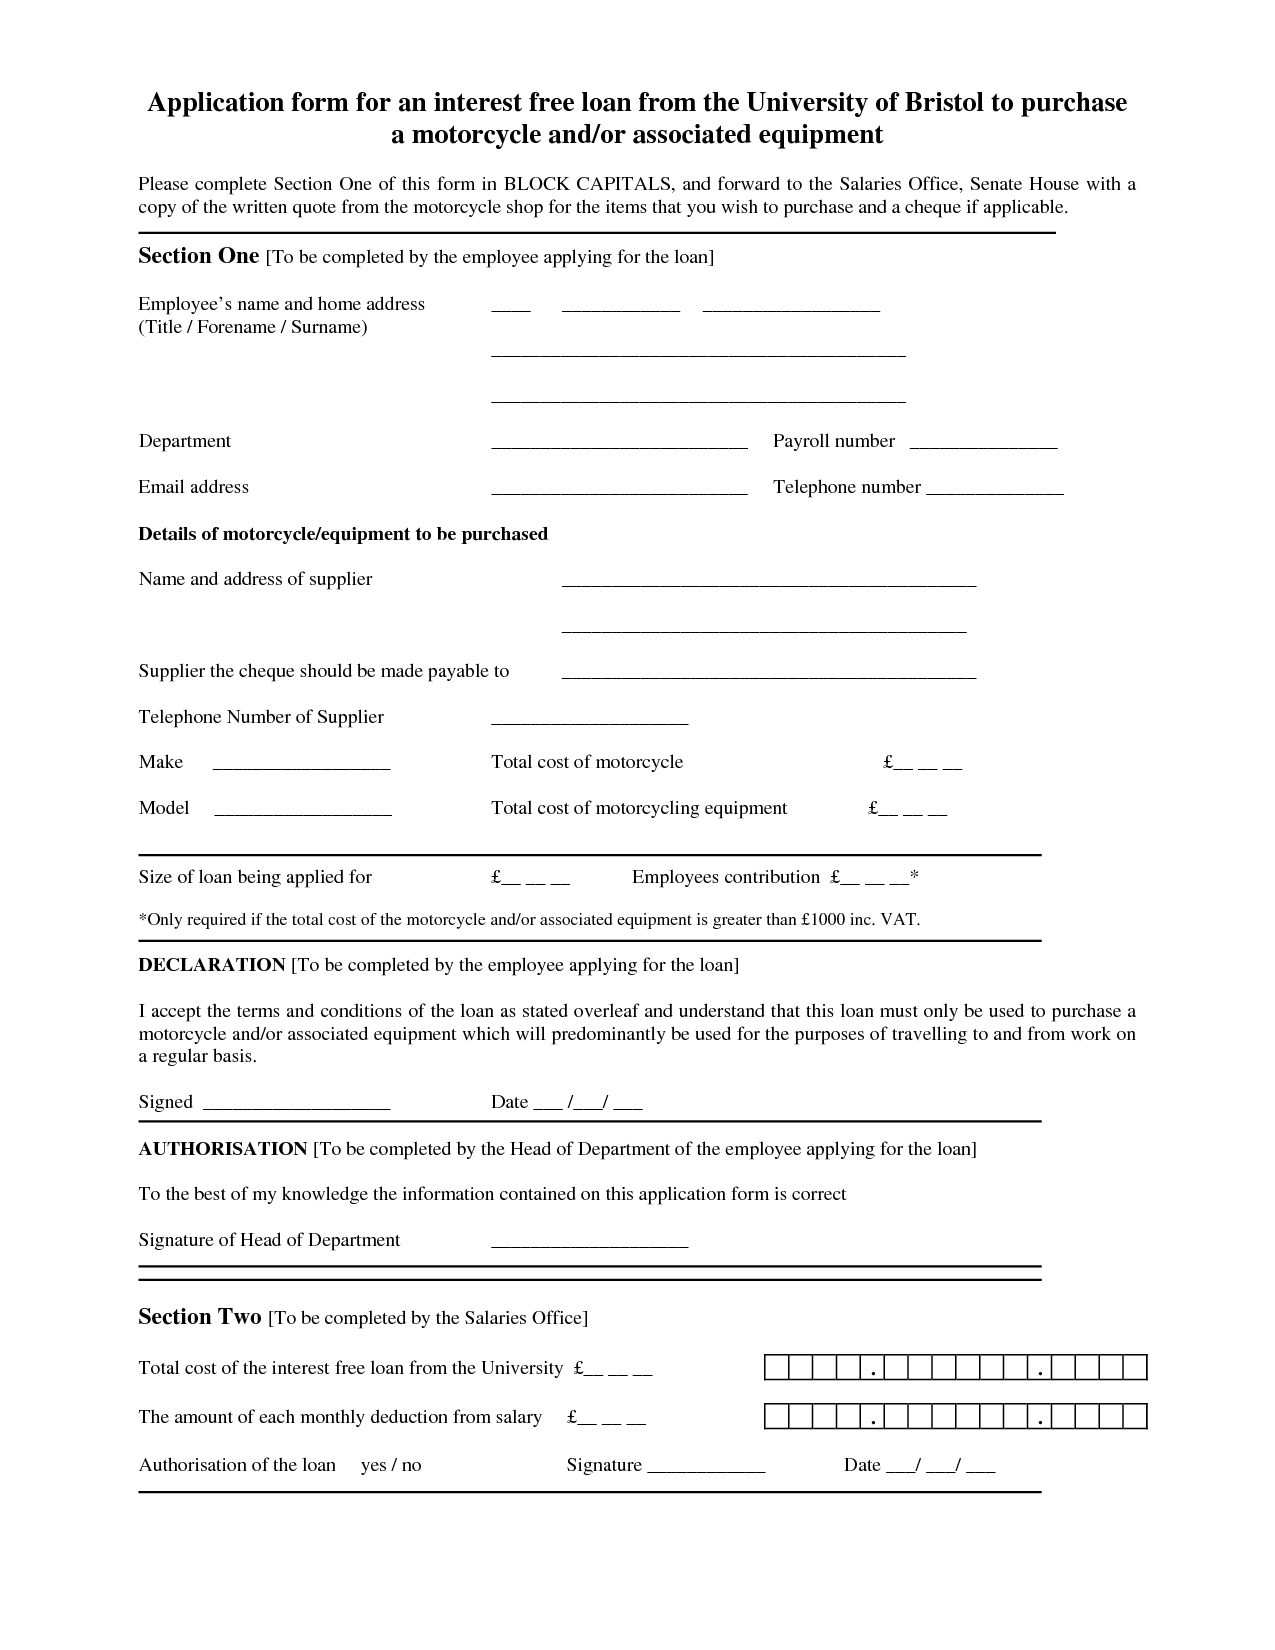 Marvelous Download Personal Loan Agreement Form For Free. Try Various Formats Ofu003cbr /u003e